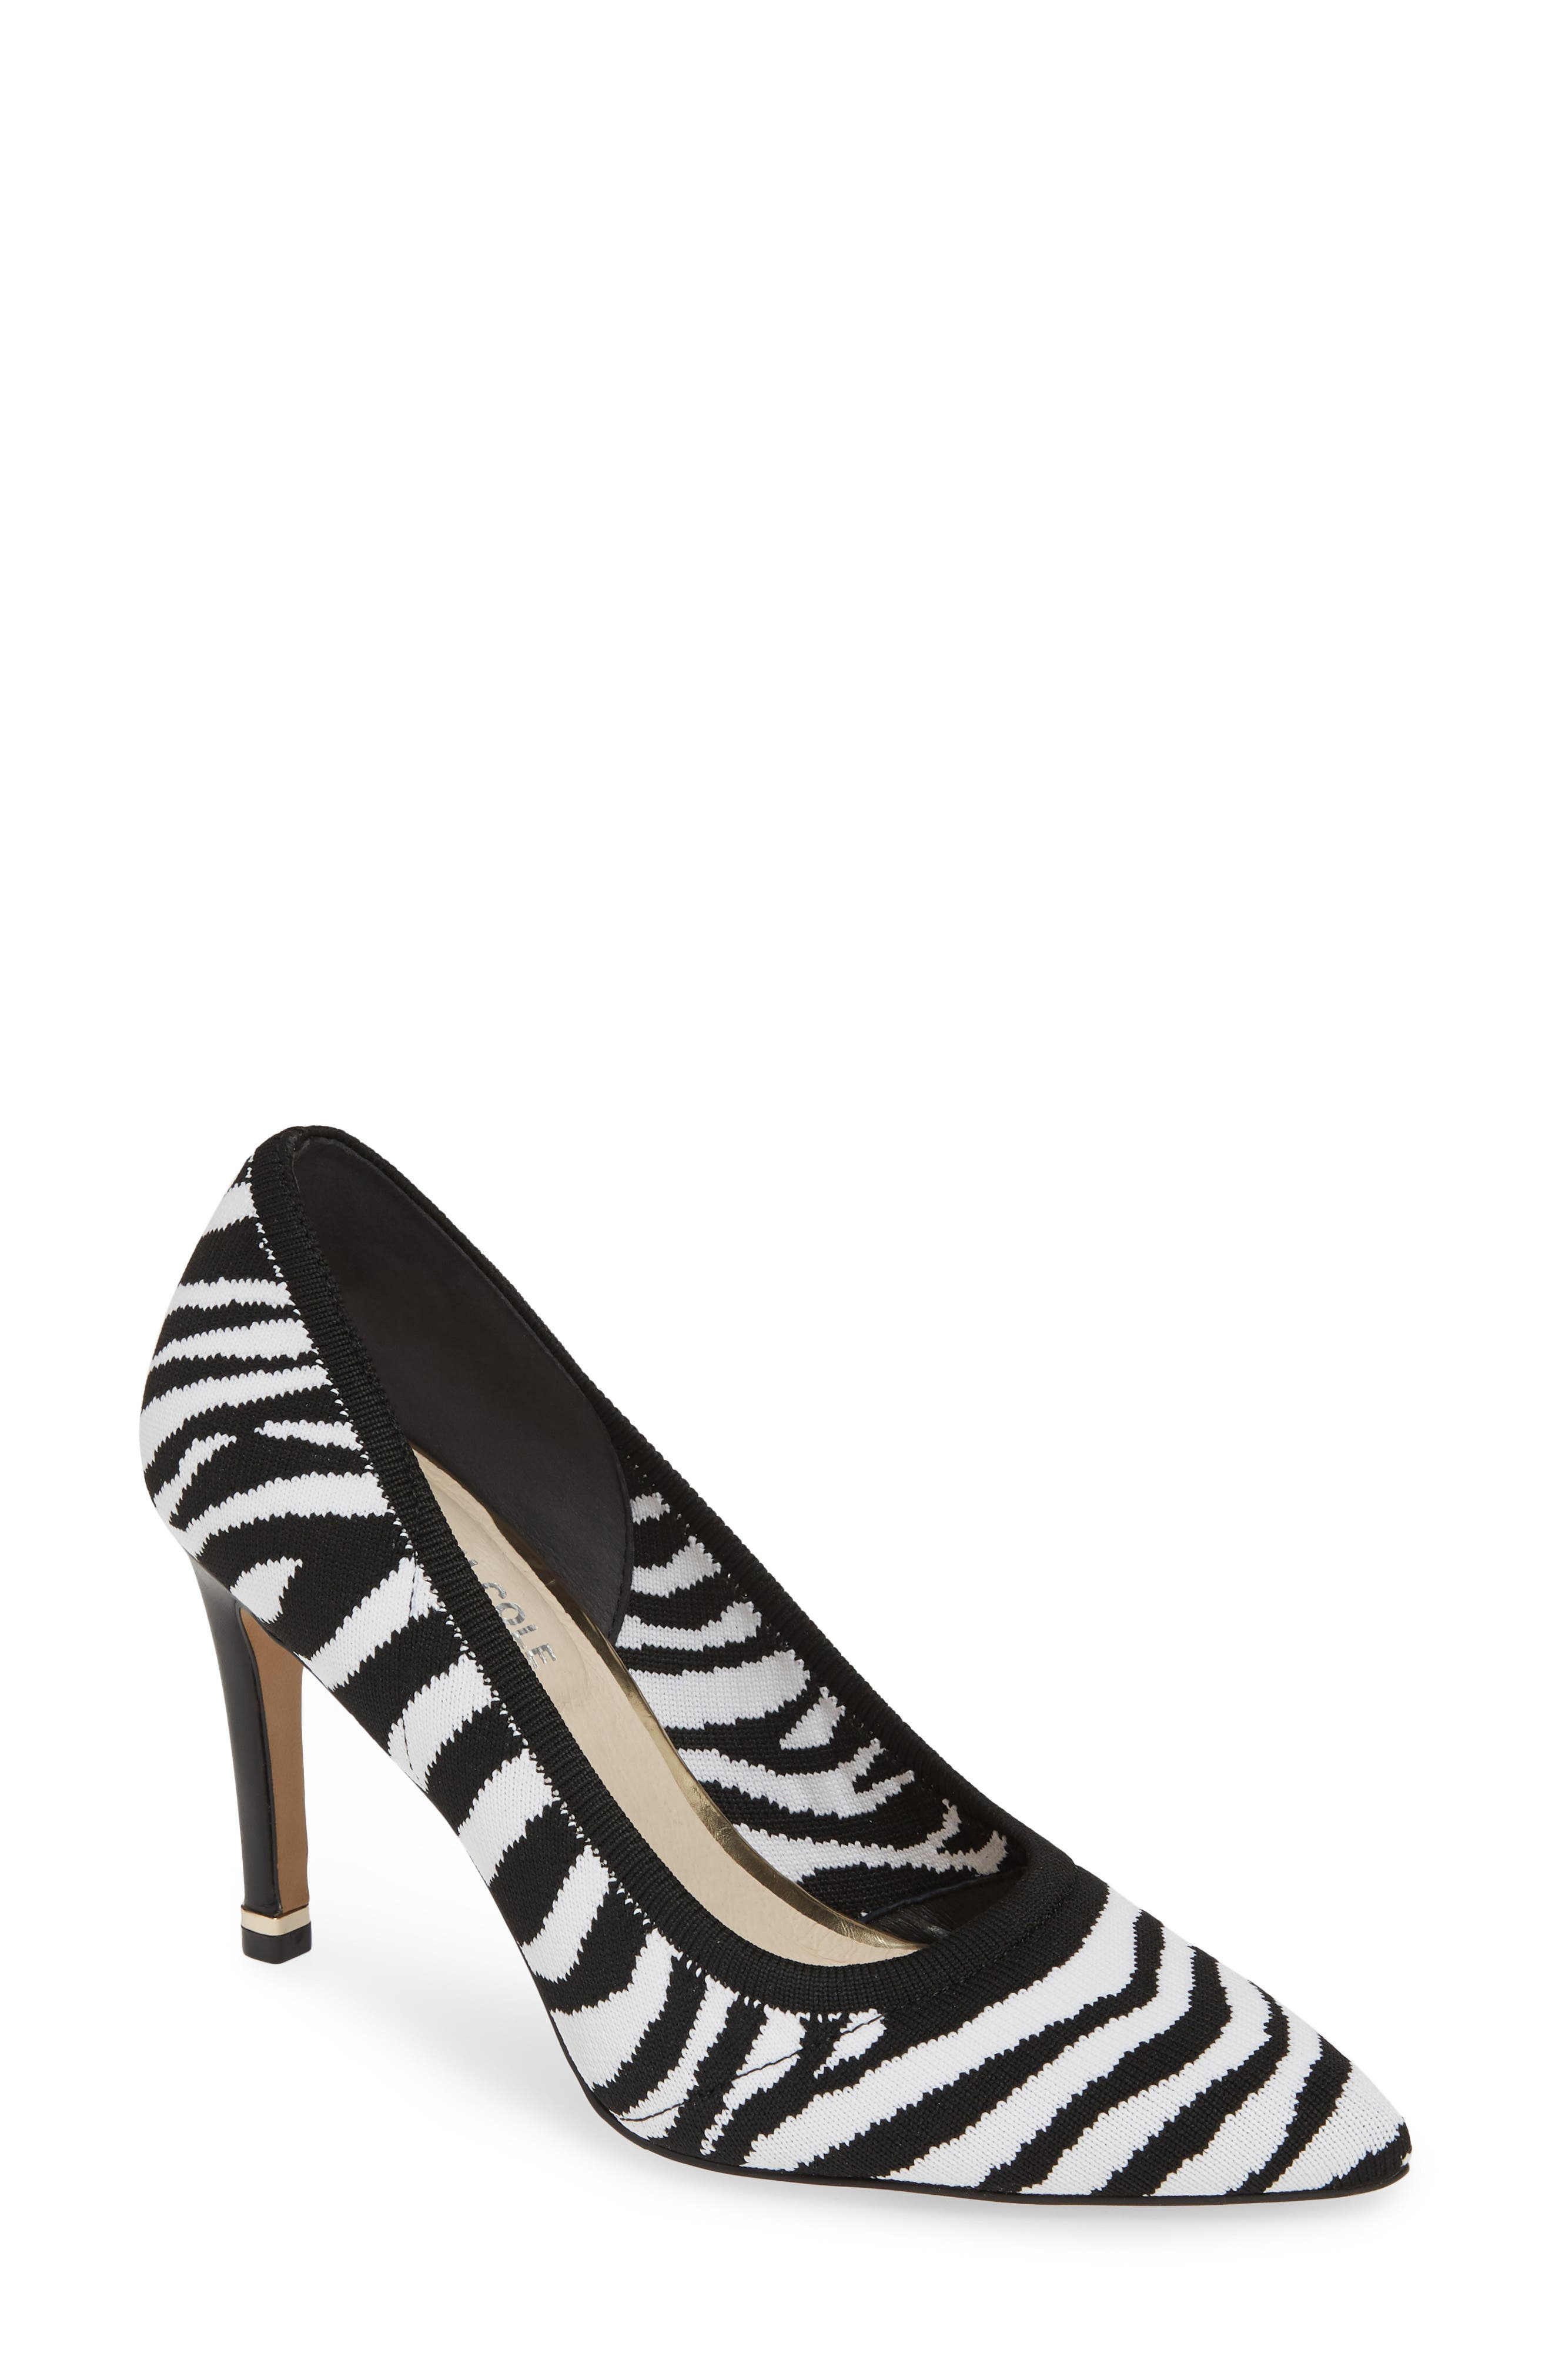 KENNETH COLE NEW YORK,                             Riley 85 Pump,                             Main thumbnail 1, color,                             BLACK/ WHITE KNIT